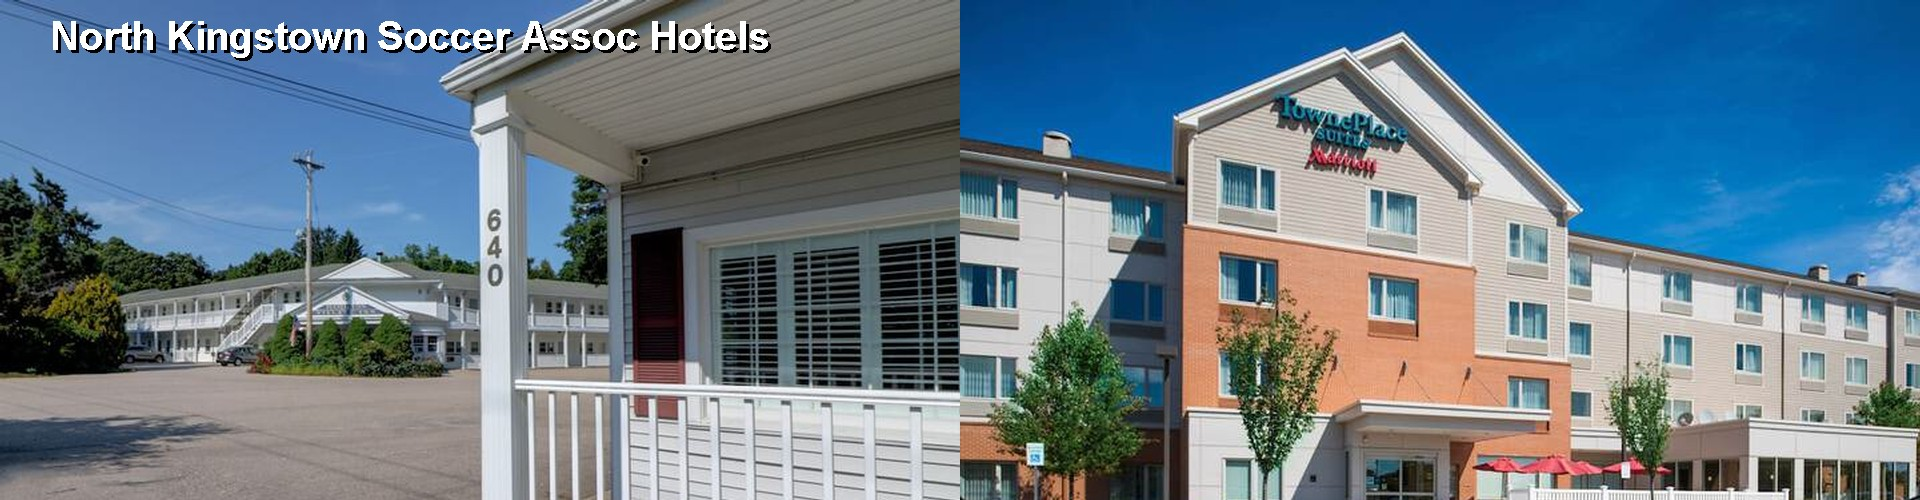 5 Best Hotels near North Kingstown Soccer Assoc